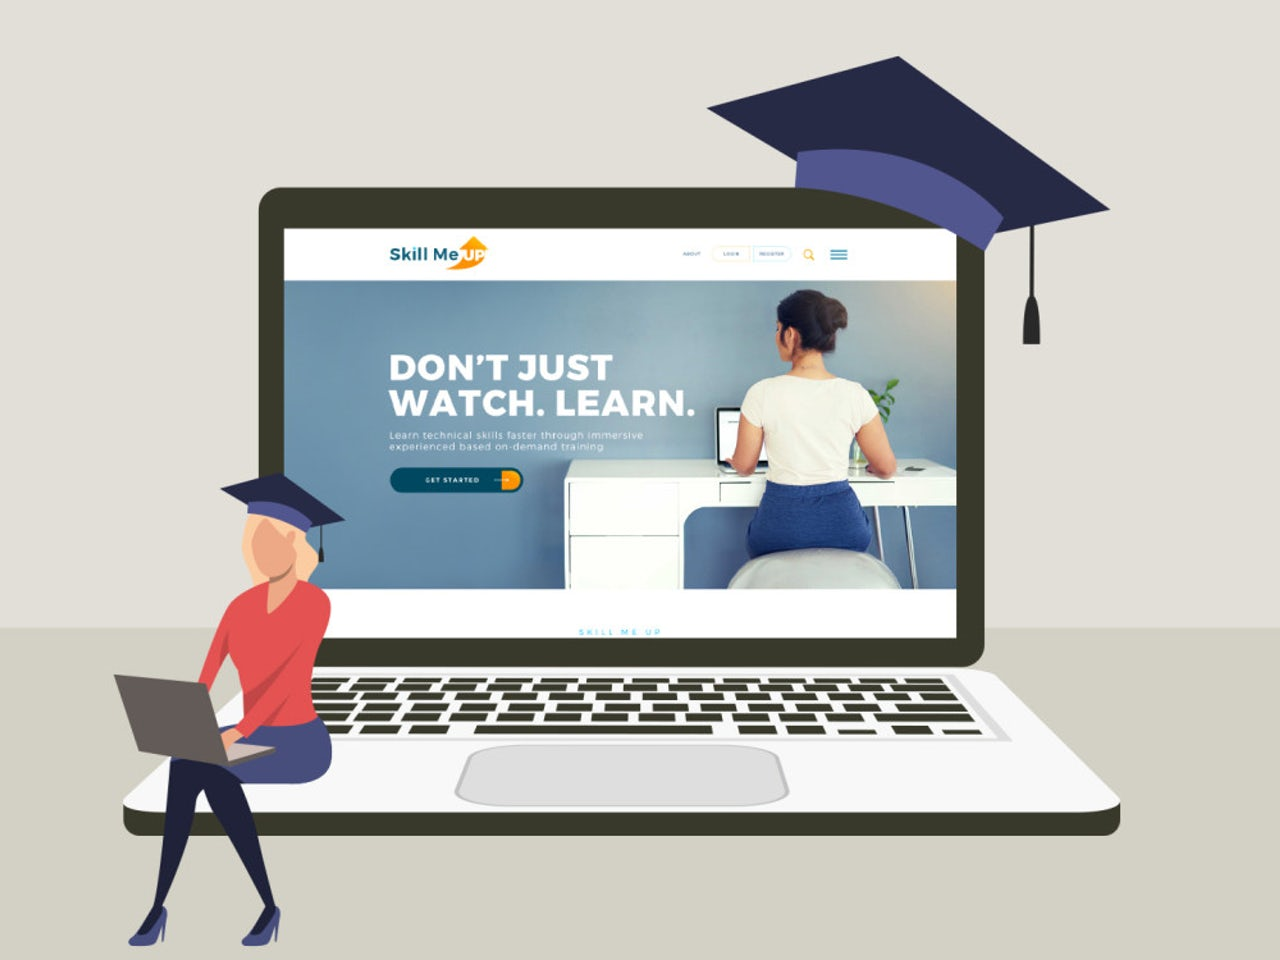 26 Best Education Website Design Ideas That Skip To The Head Of The Class 99designs